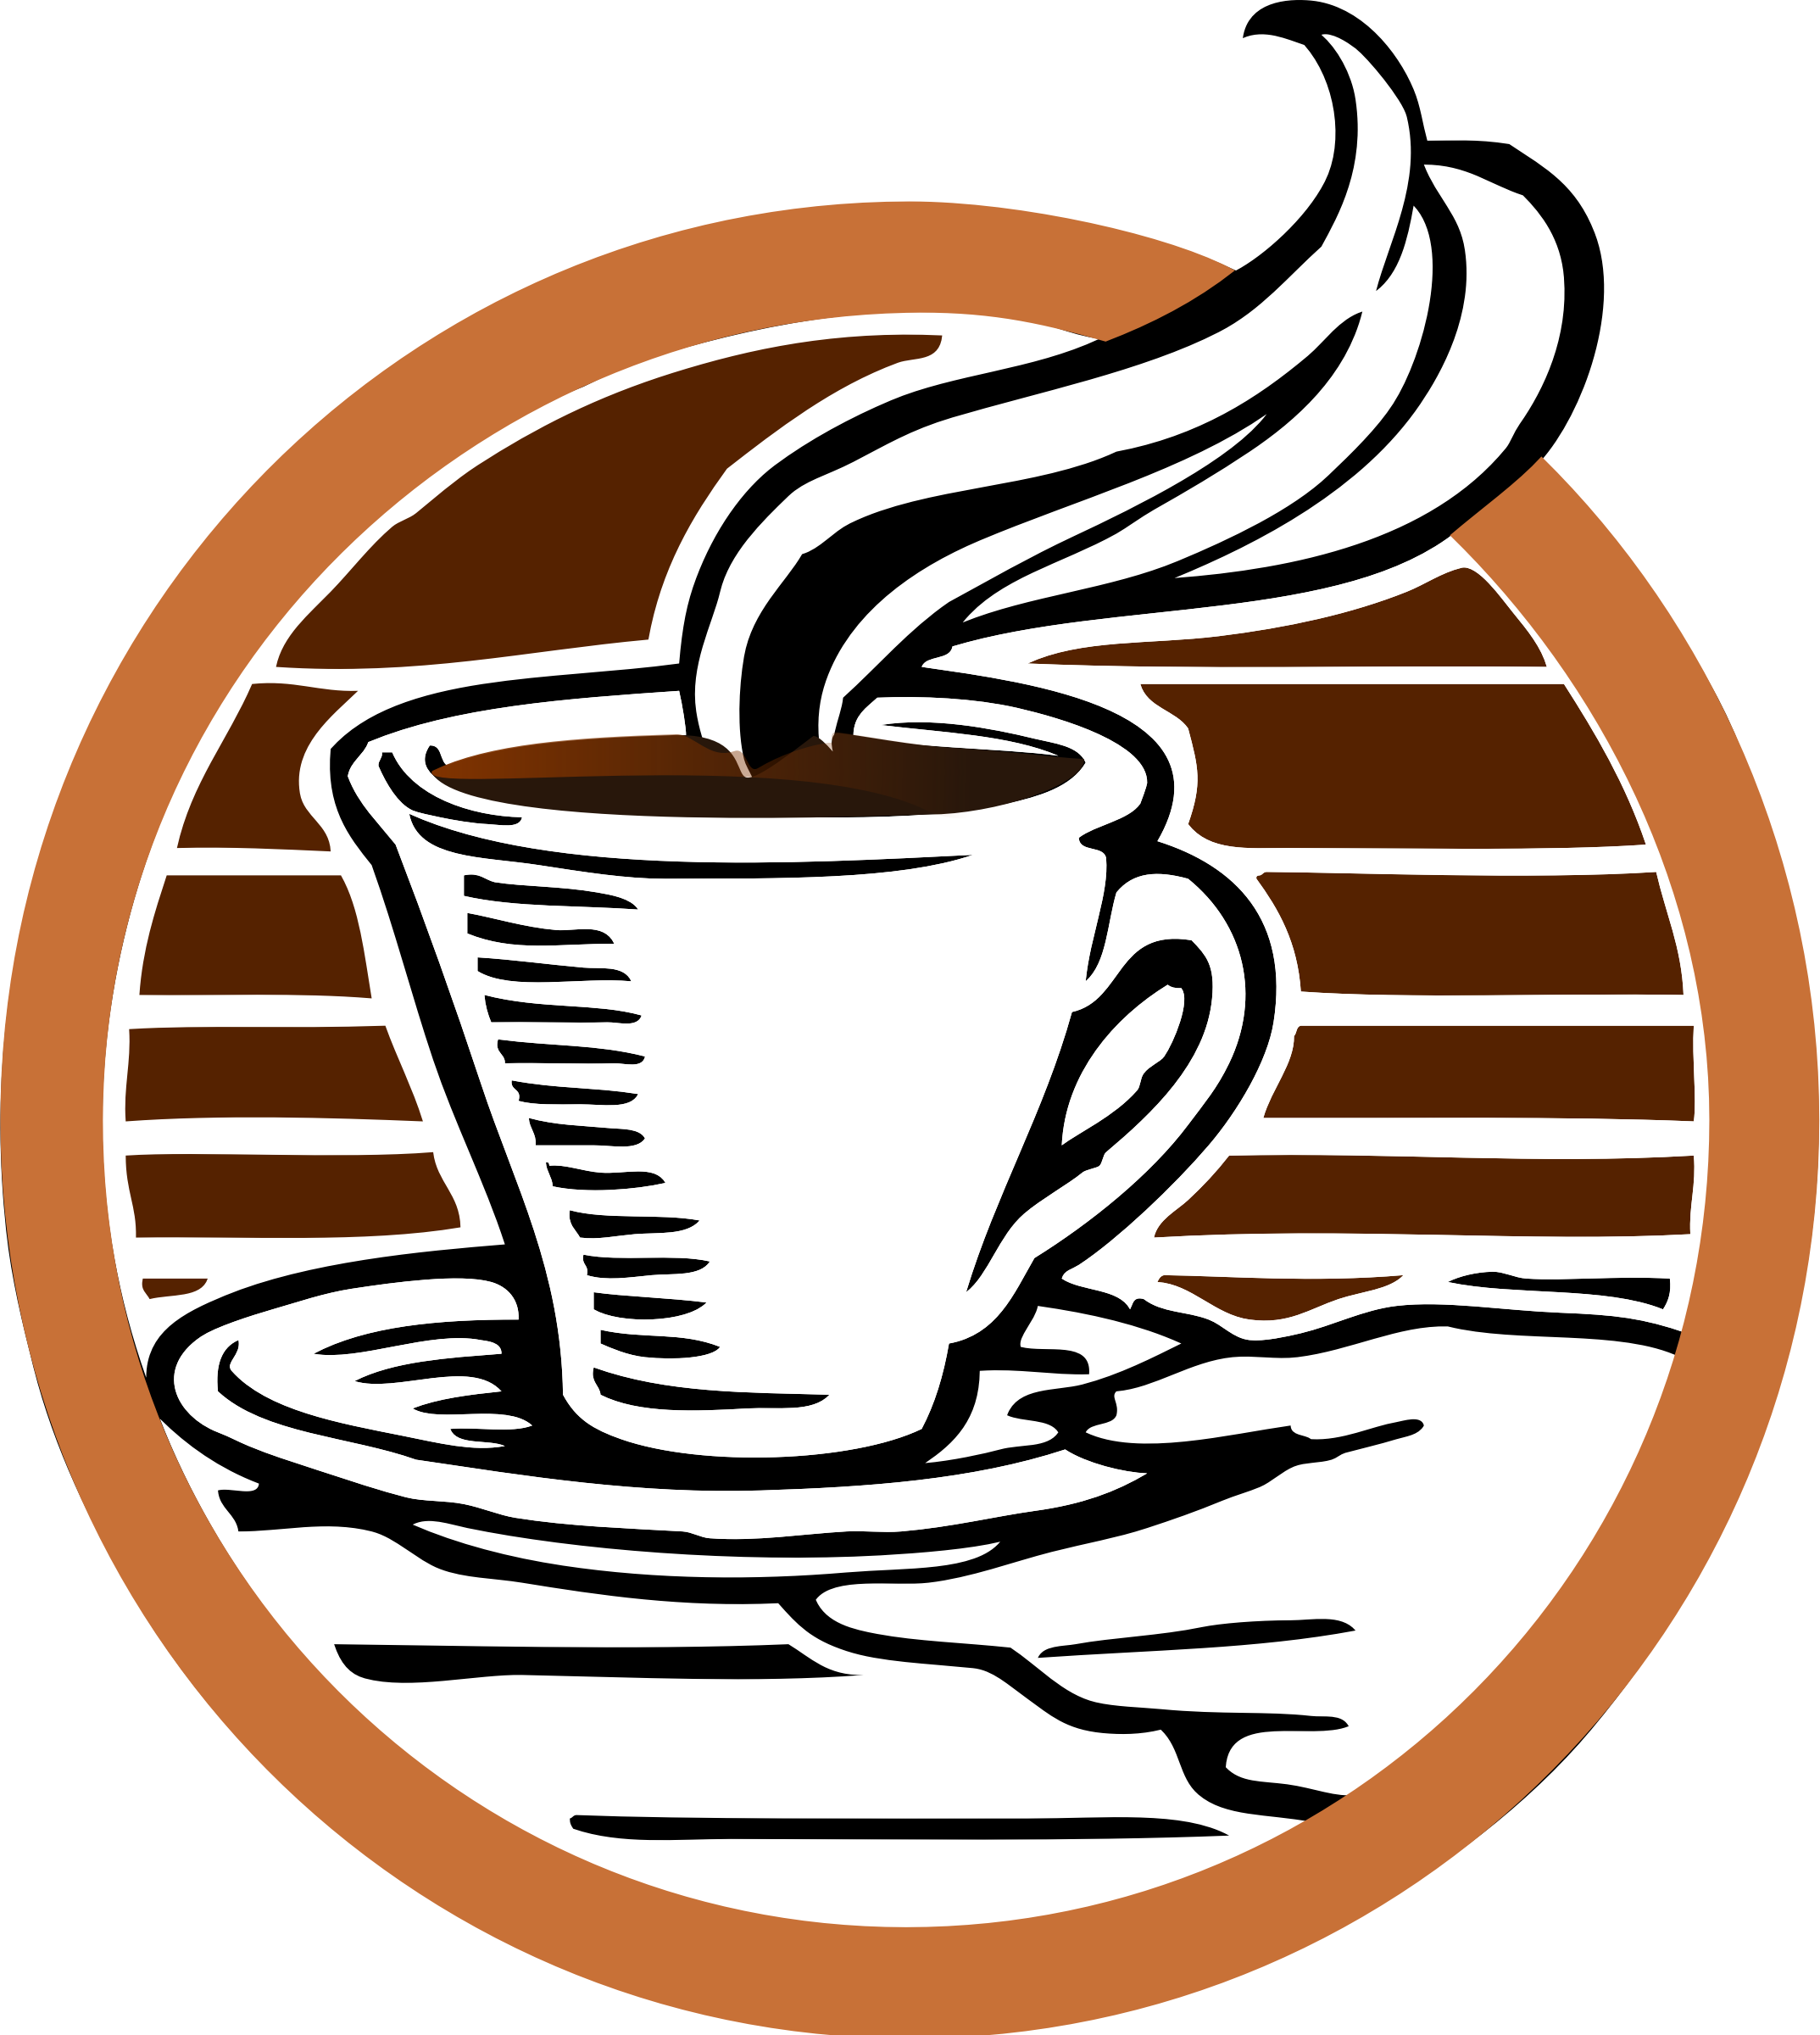 Coffee Mug Clipart   Free download on ClipArtMag